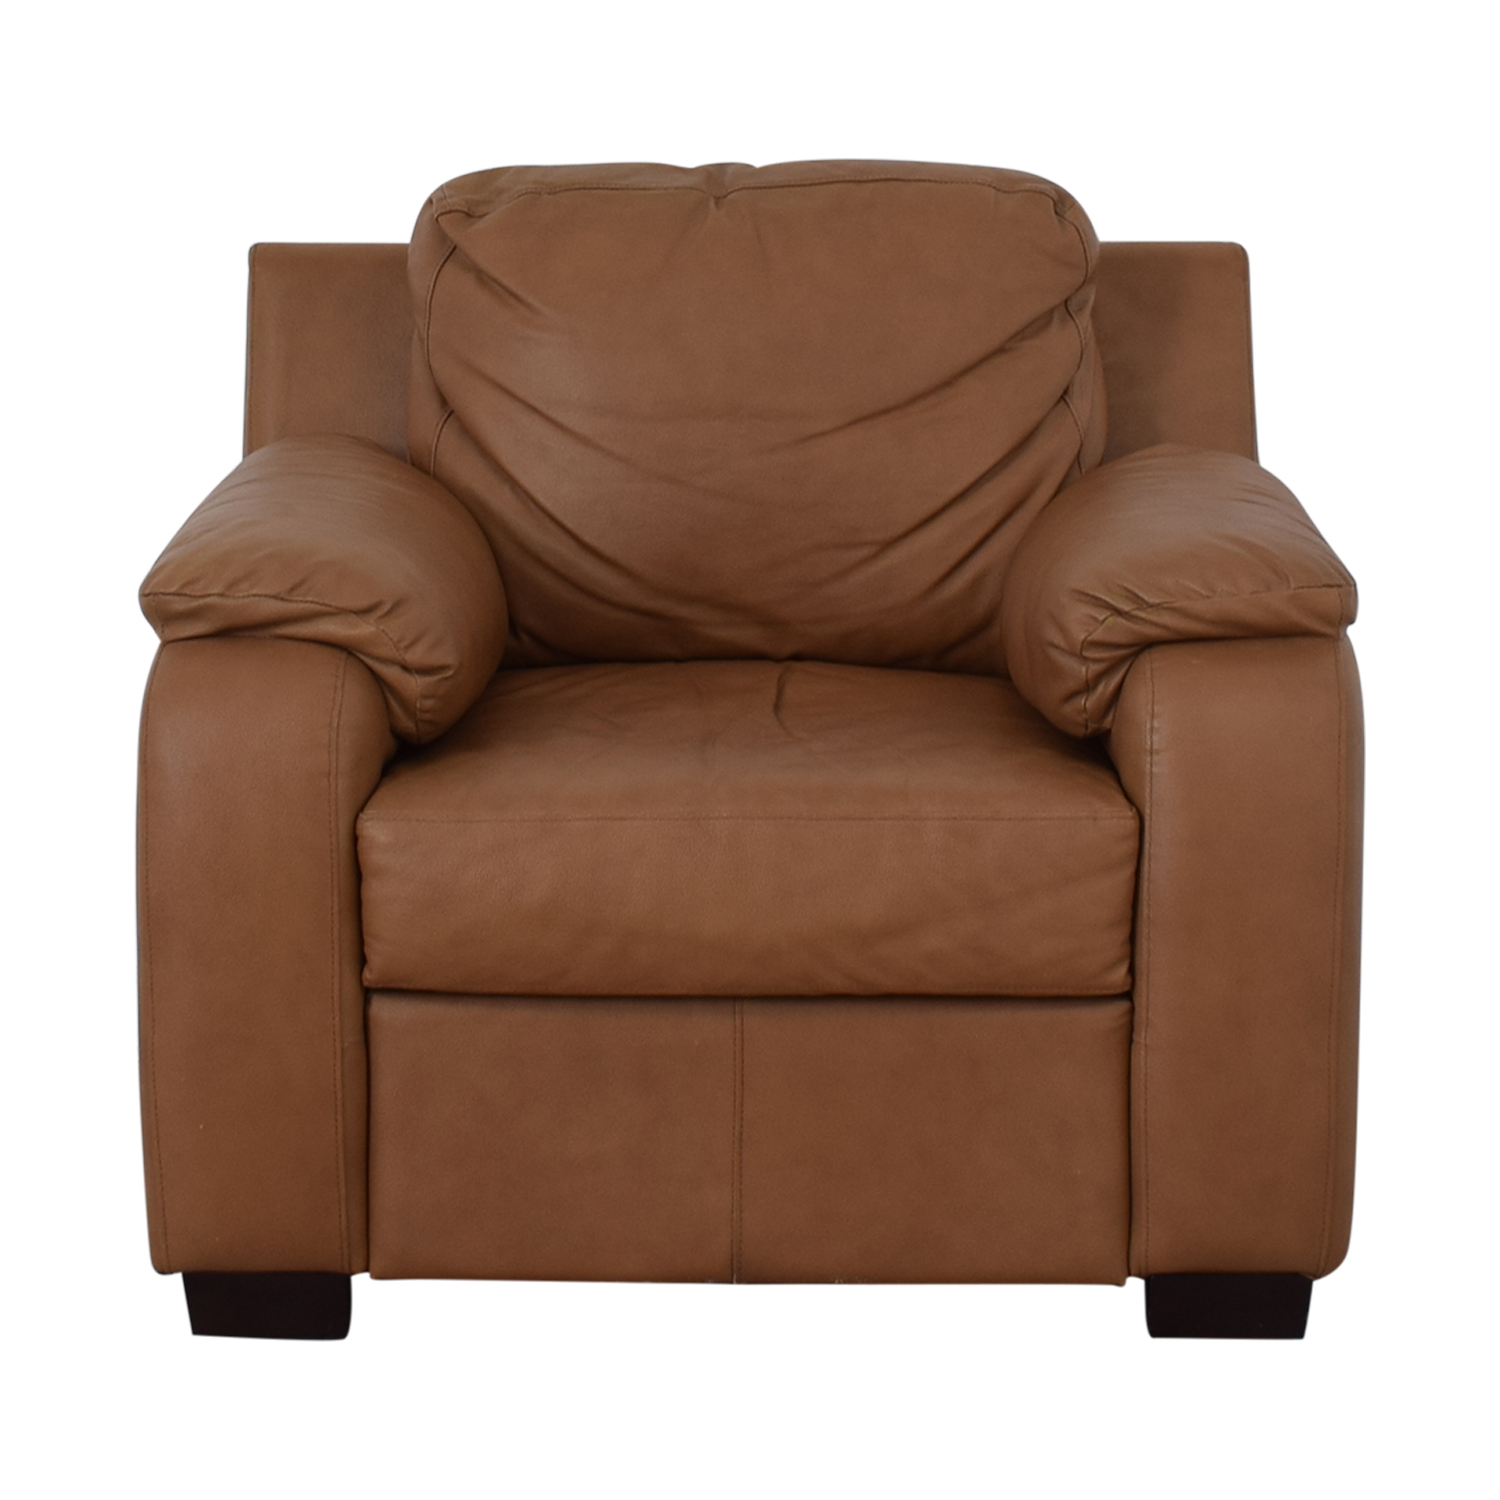 Jennifer Furniture Jennifer Furniture Cognac Accent Chair second hand